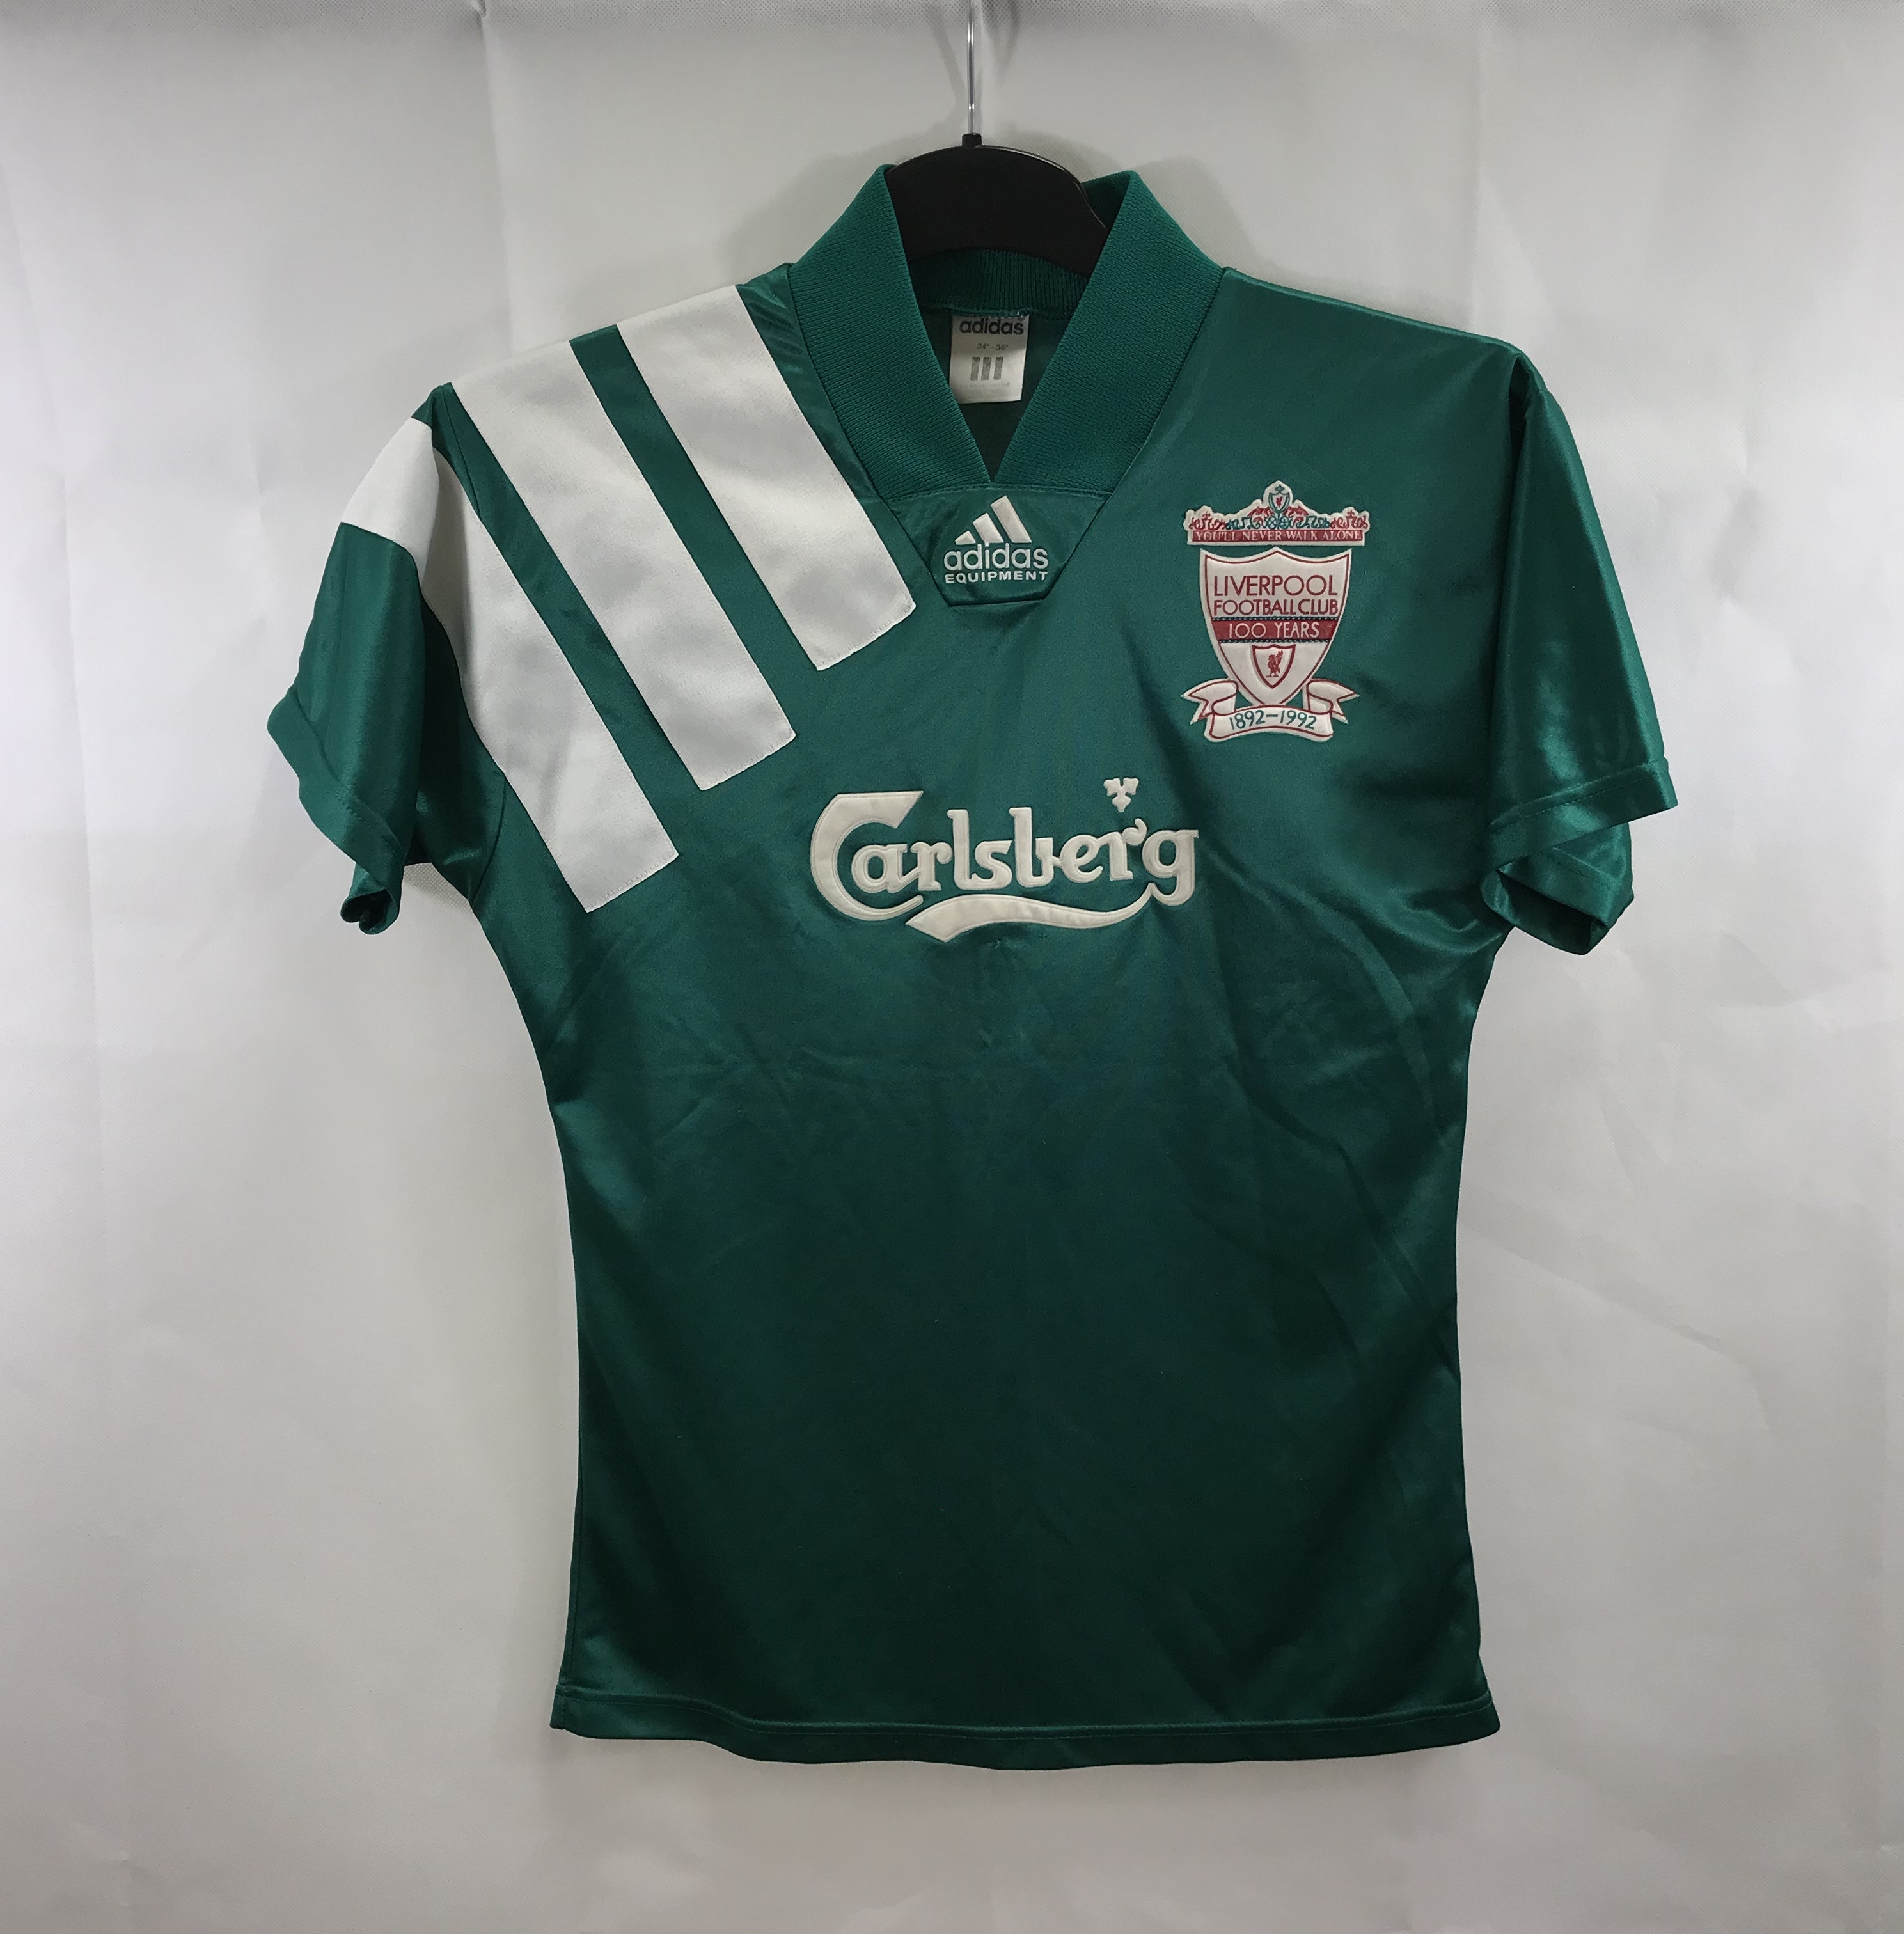 the best attitude 7f4da e1cb5 Liverpool Centenary Away Football Shirt 1992/93 Adults Small Adidas